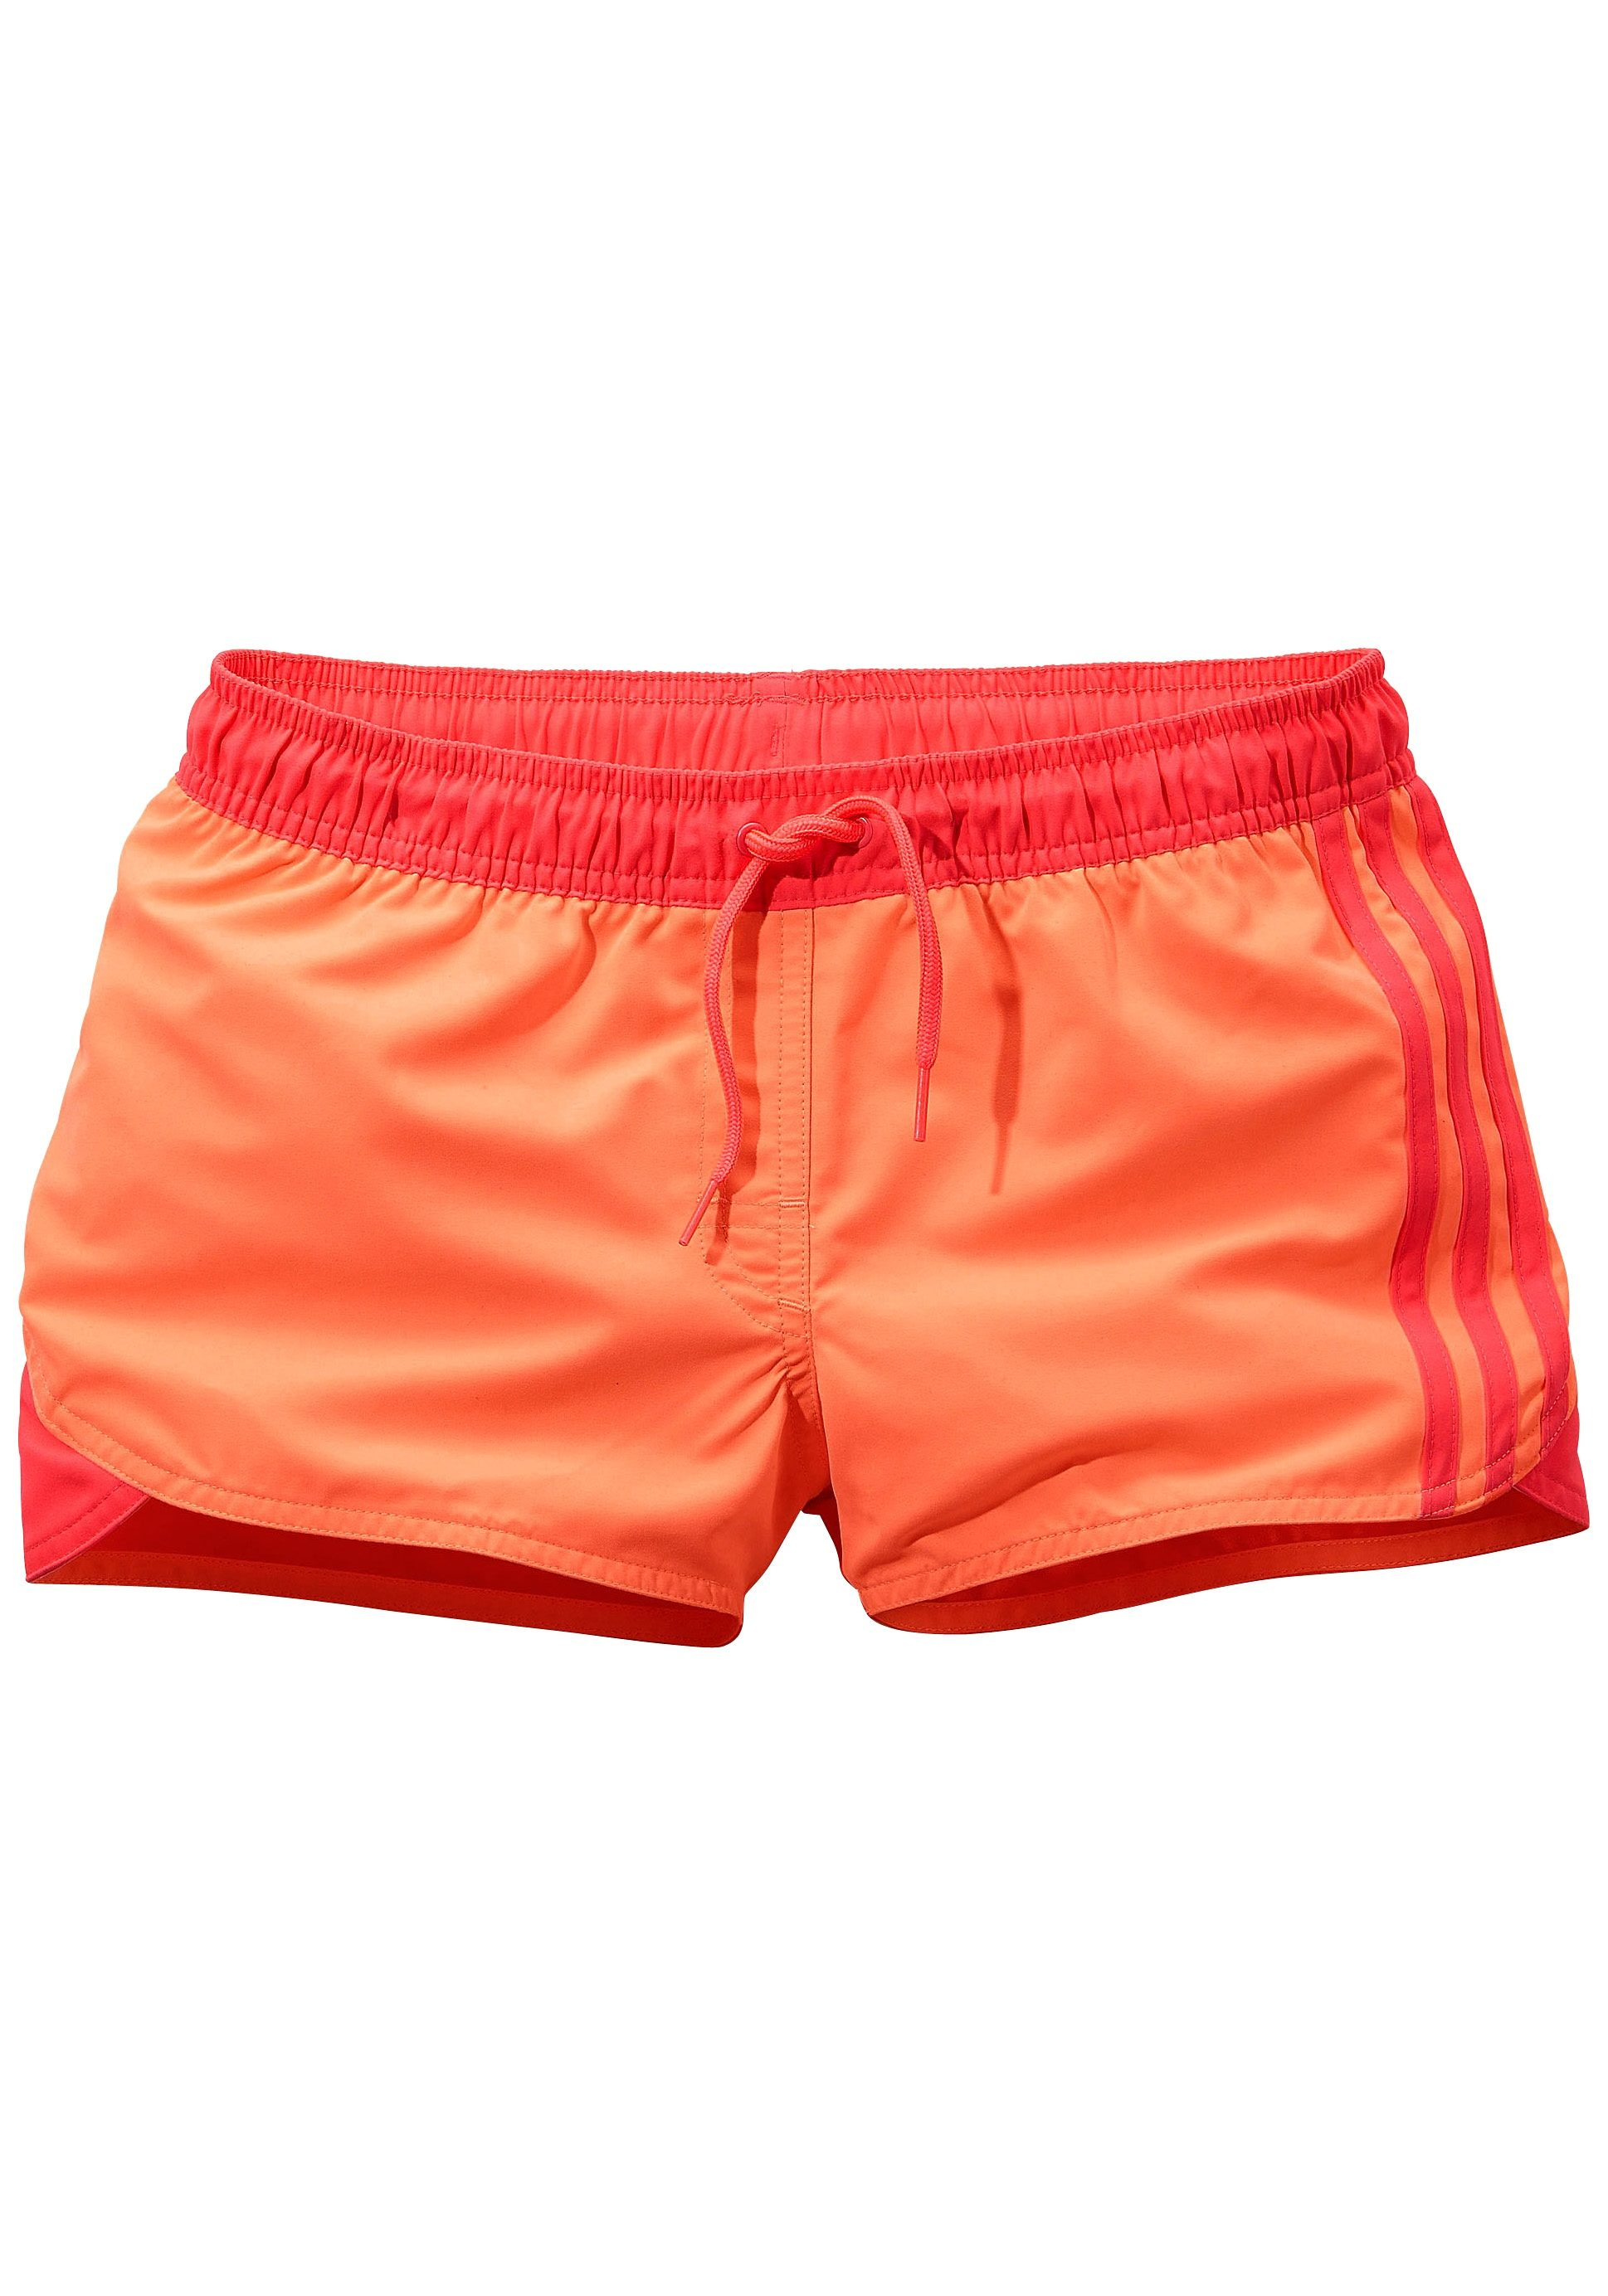 Performance In Online Achterzak Adidas De Met Short ShopOtto 8nXZN0kwOP